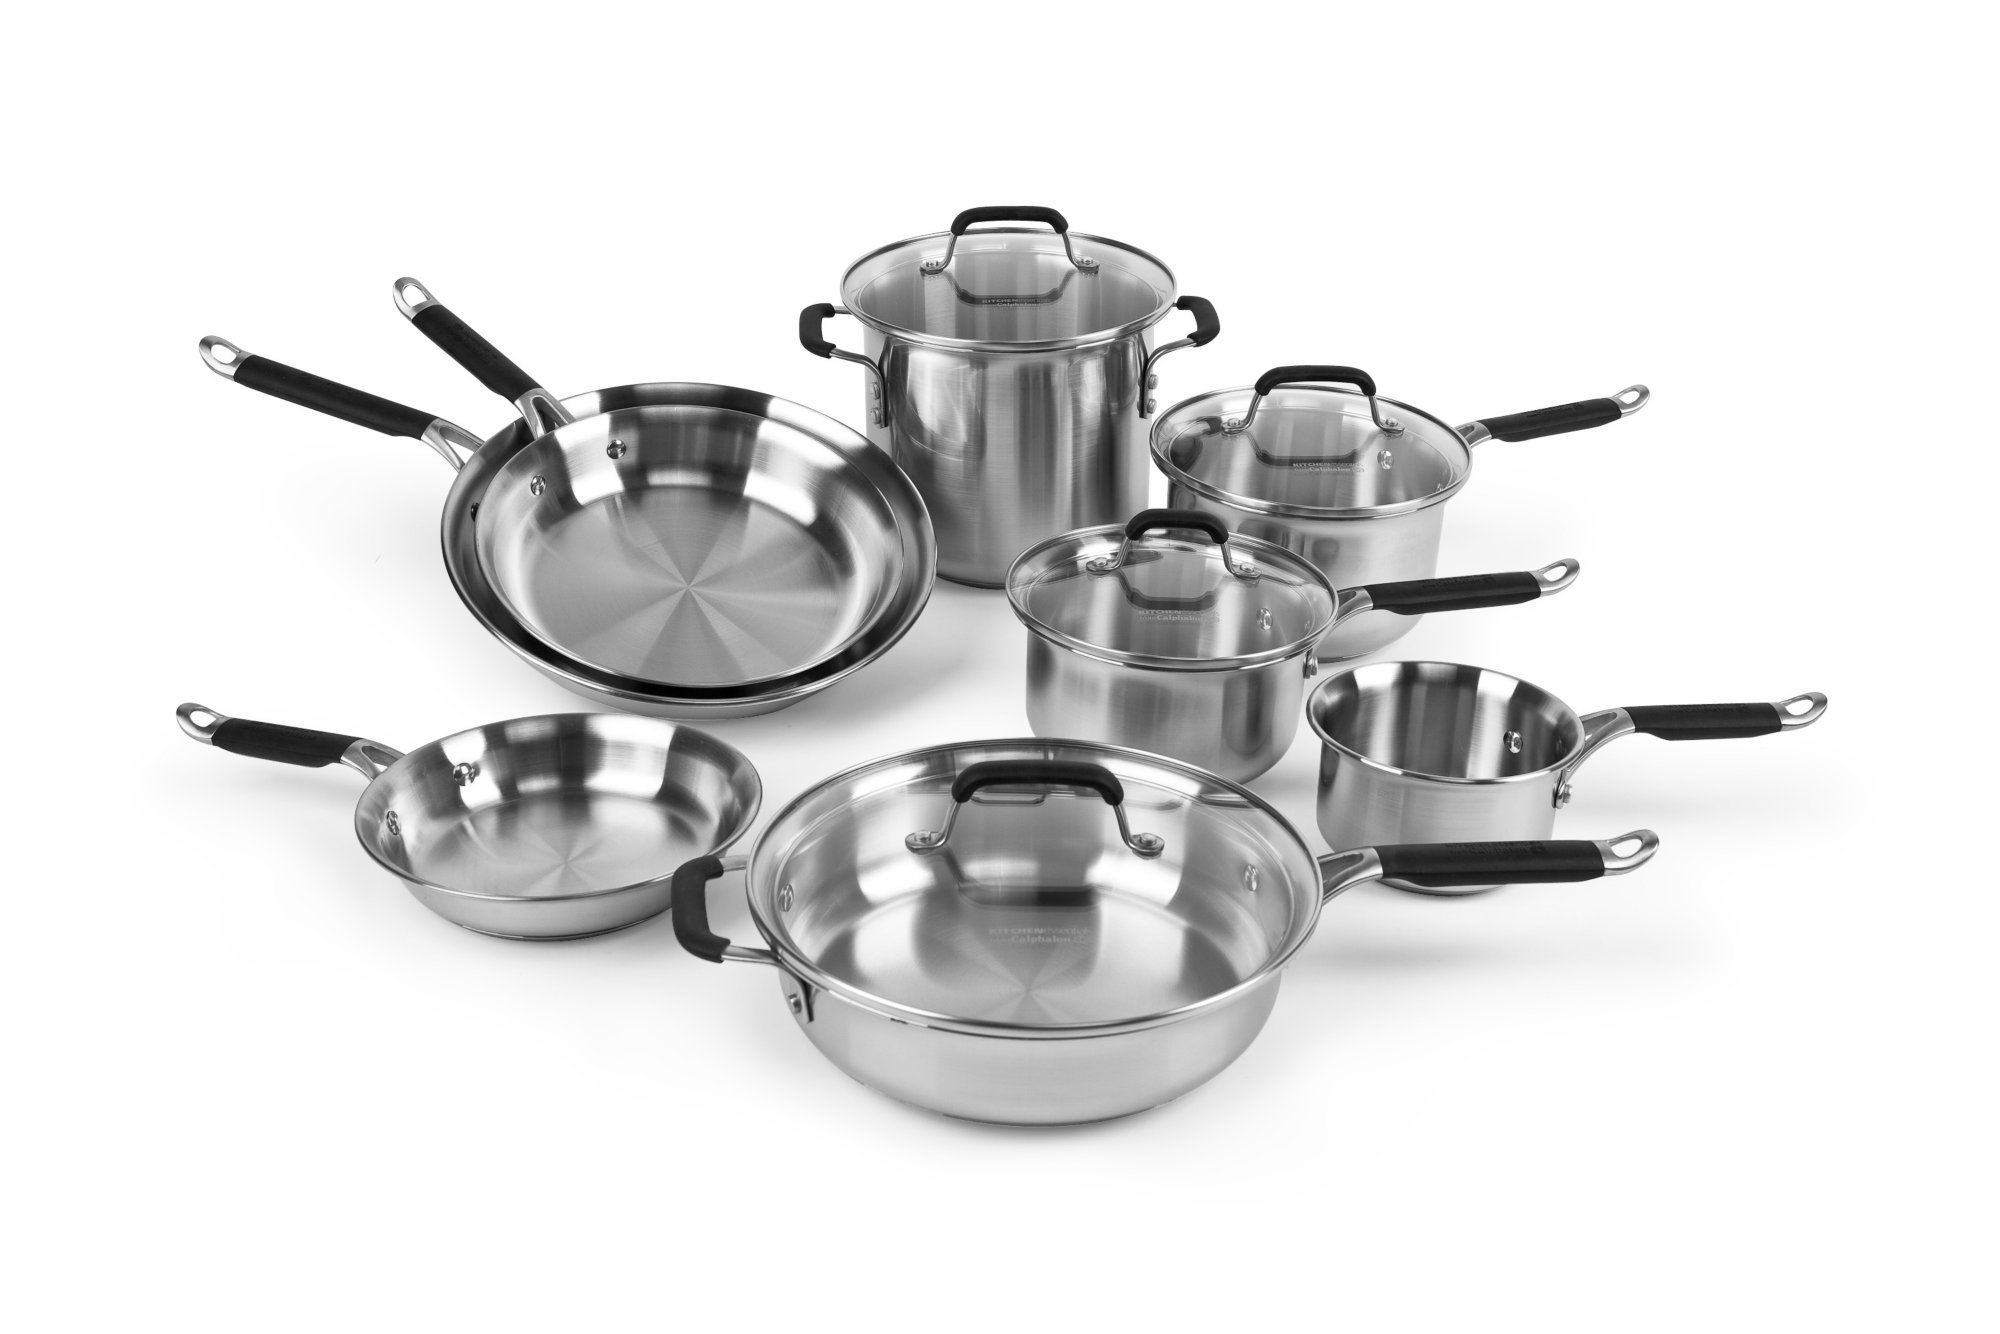 Calphalon Kitchen Essentials Stainless Steel 12 Pc Cookware Set